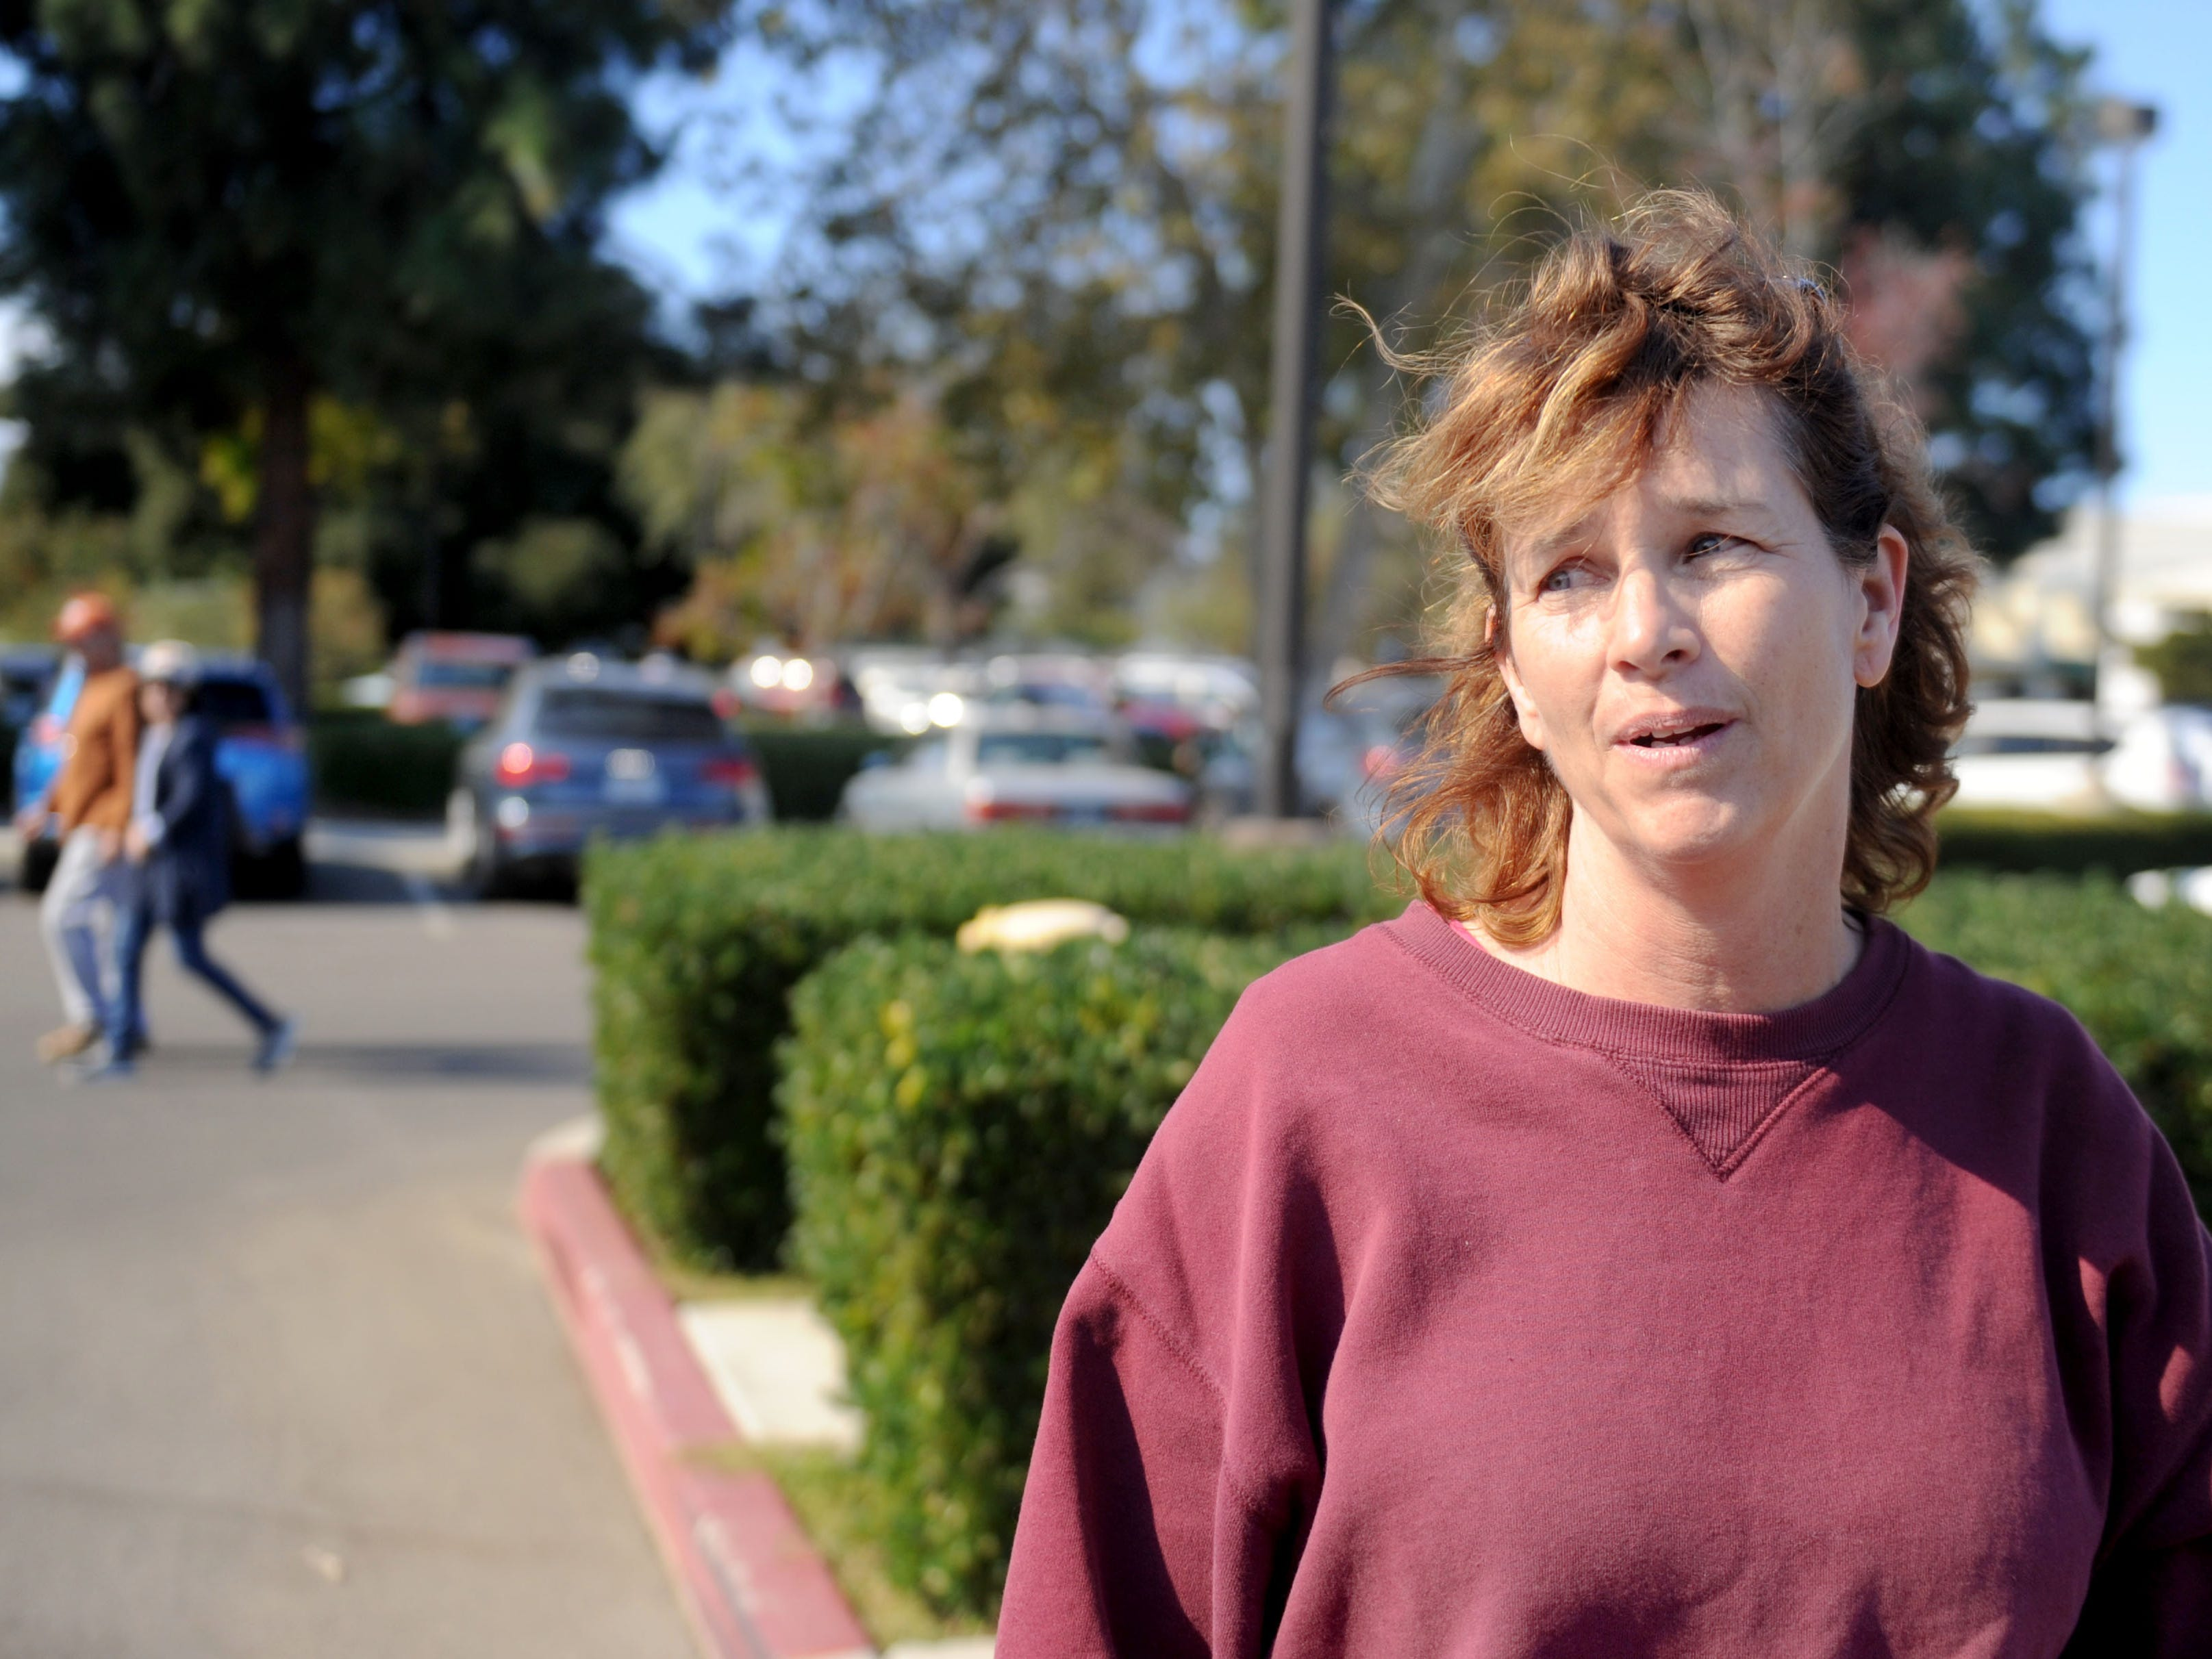 Allison Moorwood evacuated her home Friday at  2 a.m. in Thousand Oaks. She went to the Goebel Senior Adult Center.